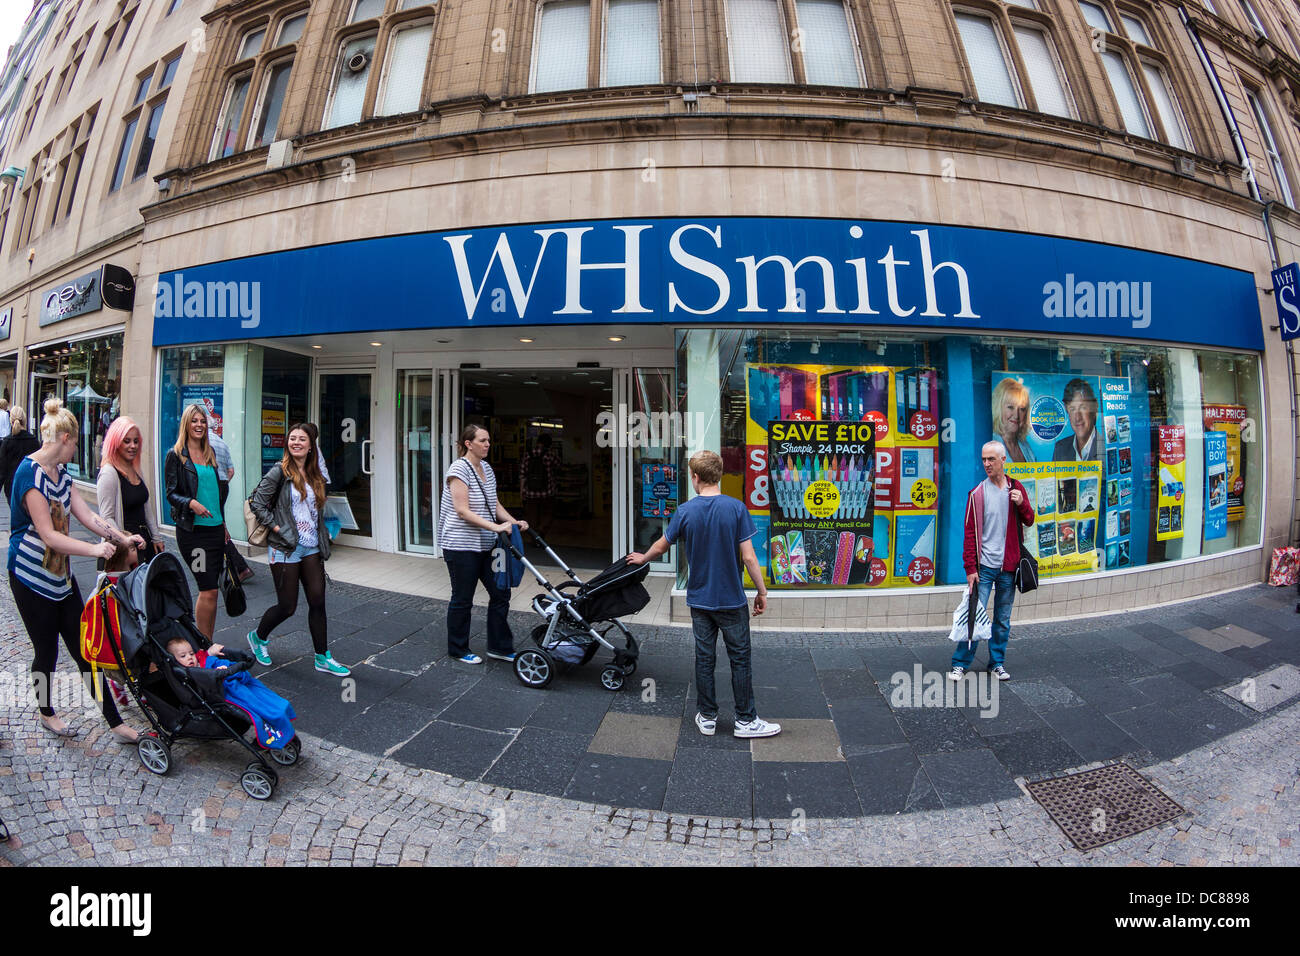 WH Smith - Stock Image